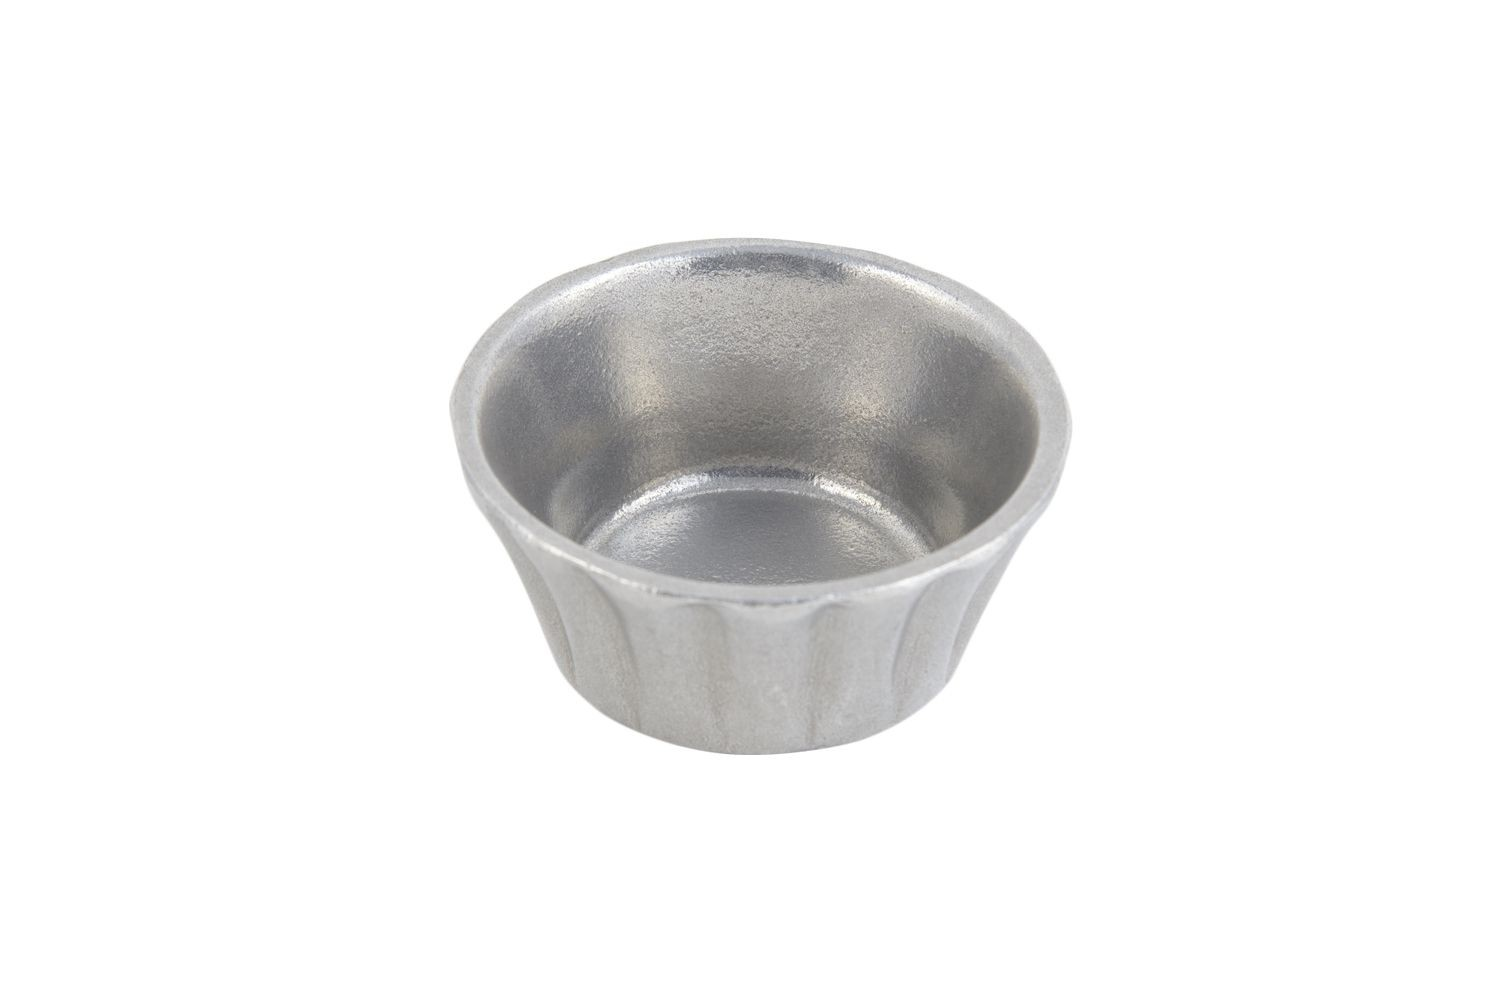 Bon Chef 9104P Round Stackable Ramekin, Pewter Glo 4 oz., Set of 24